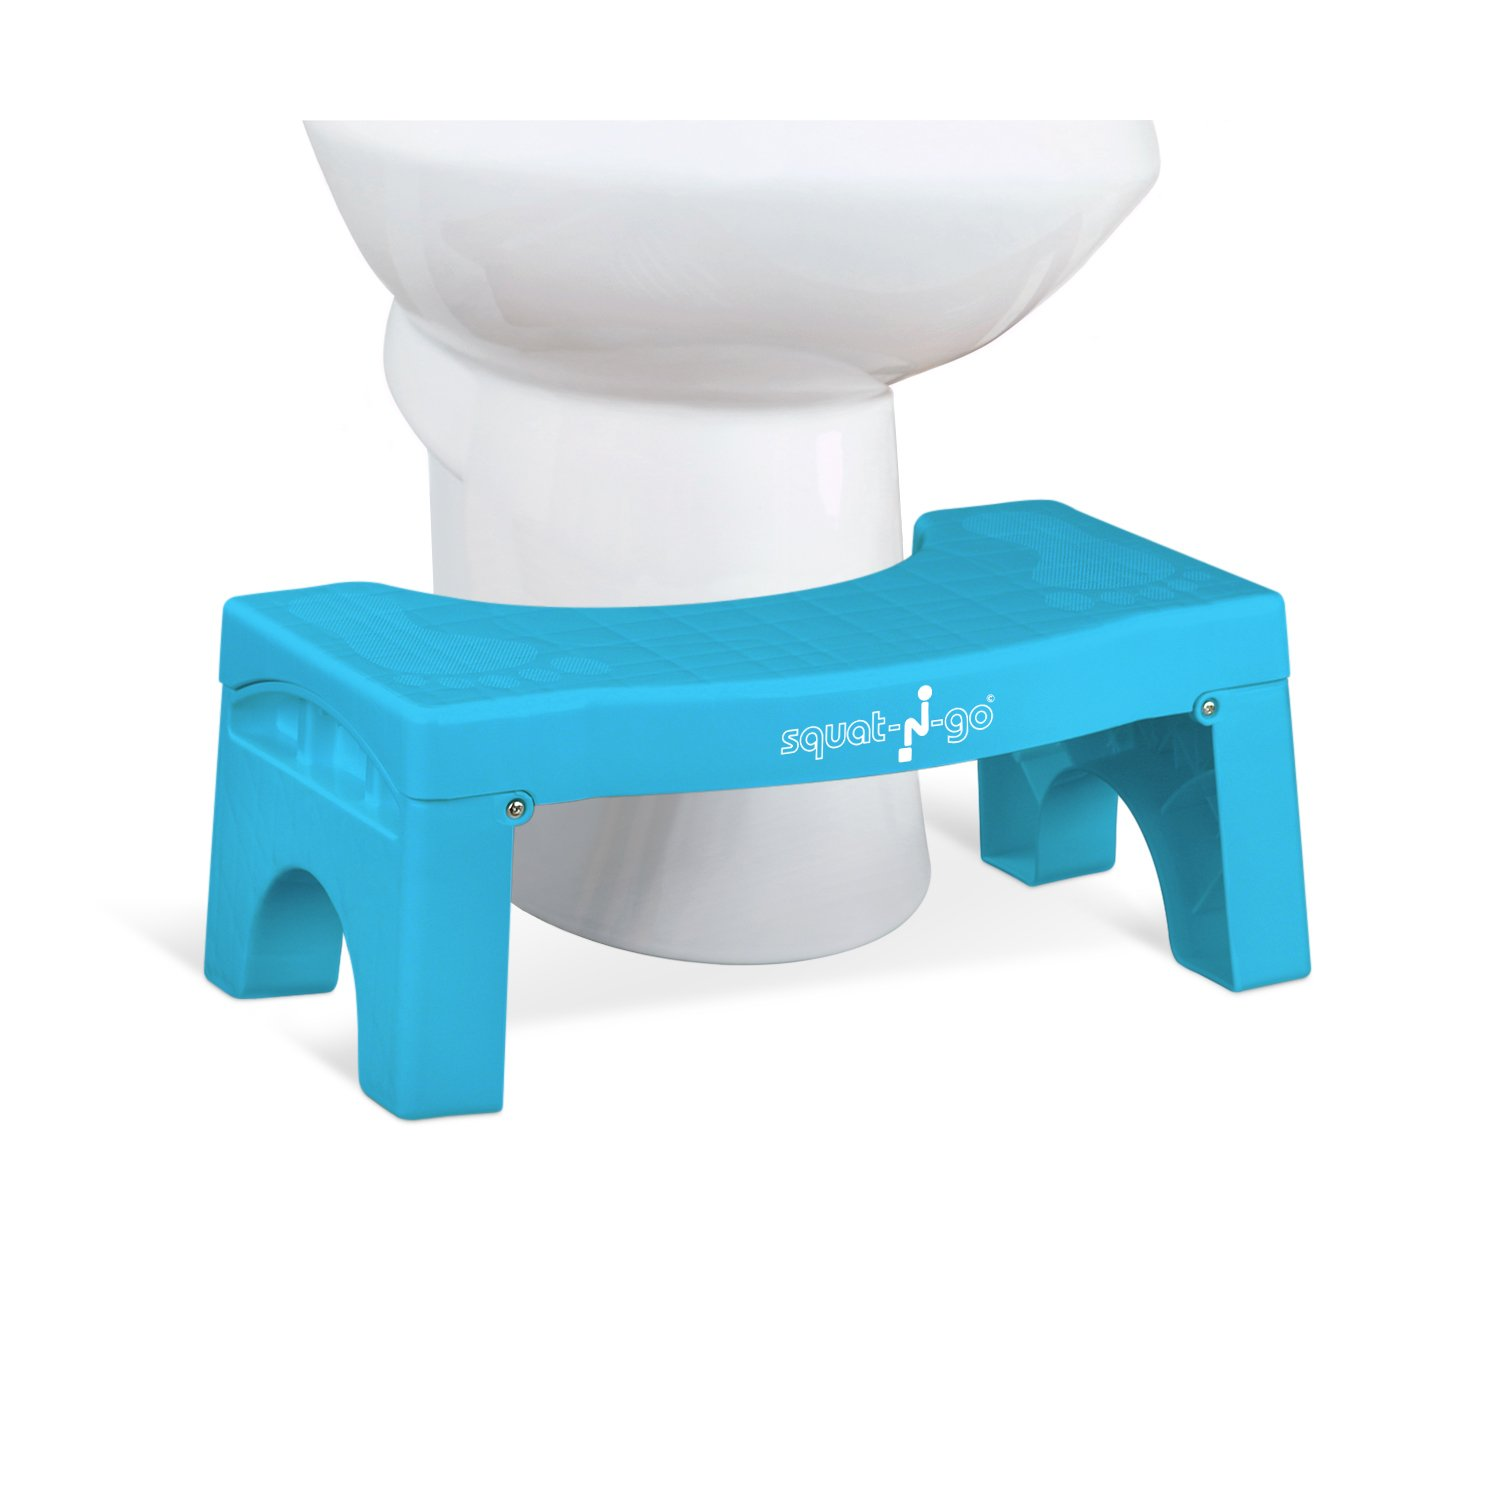 Bathroom Squat Stool Toilet Step Chair Relief Aid